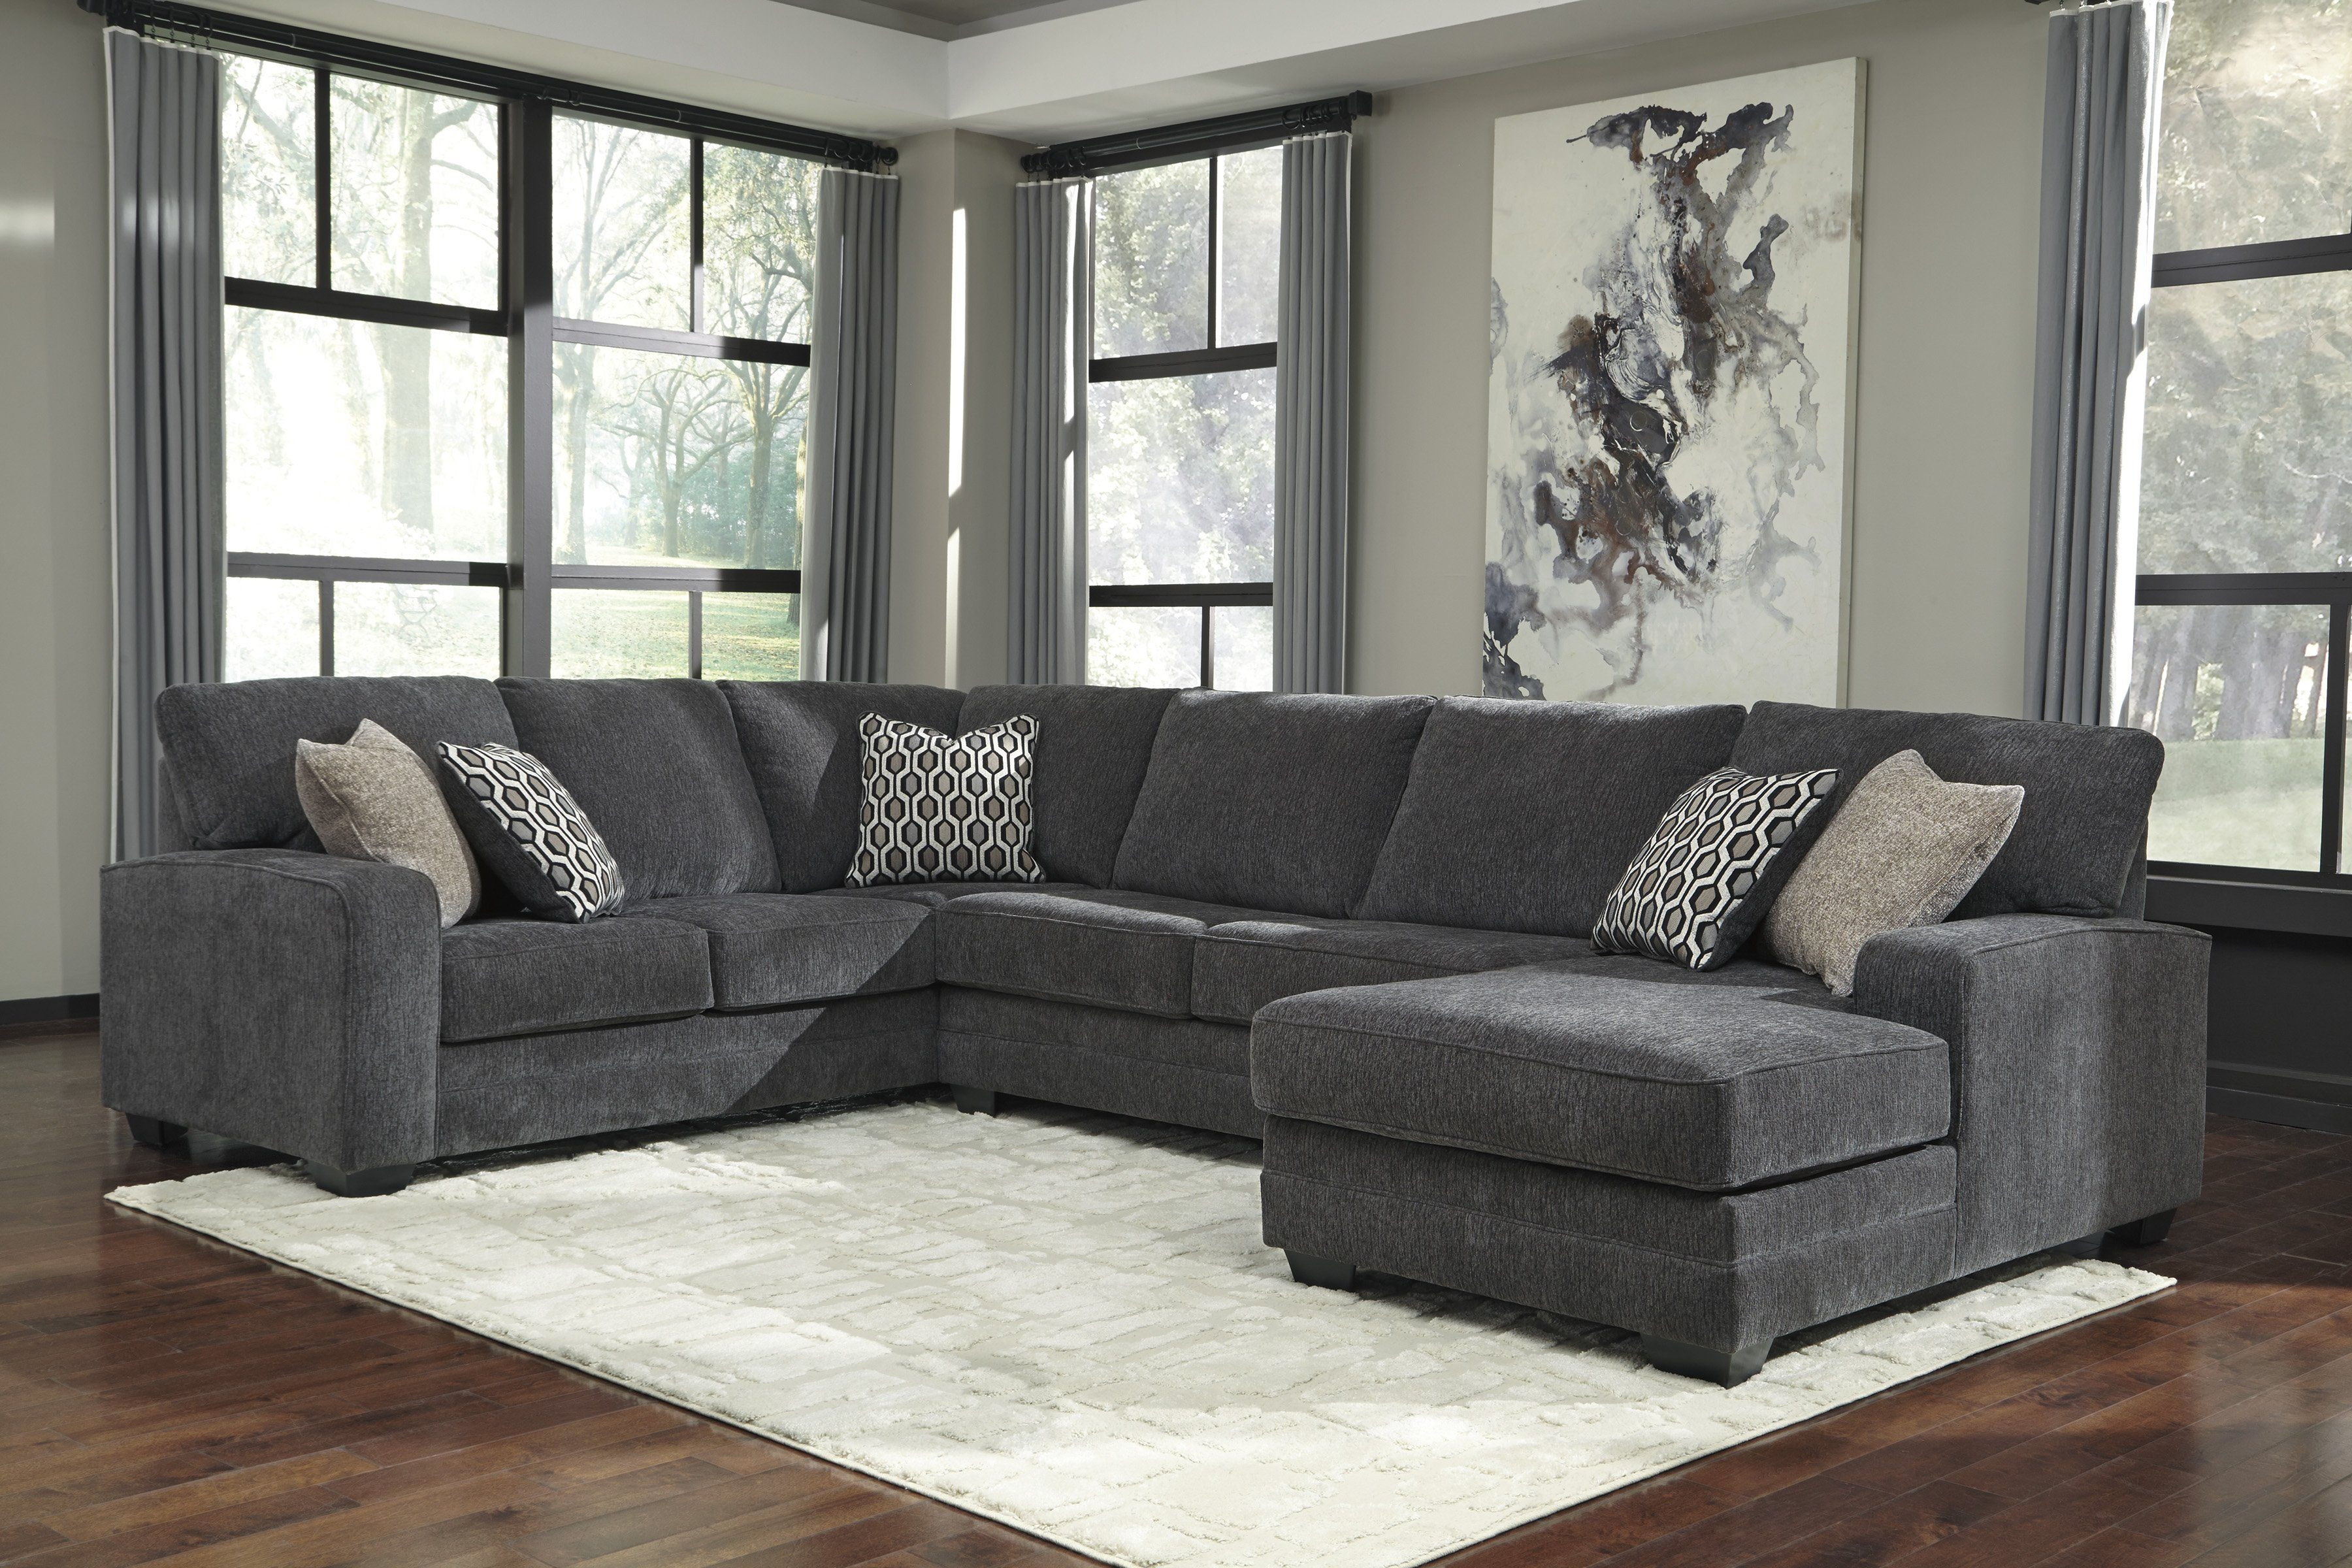 Tracling Sectional Slate In 2019 Room Ideas Home Bar Furniture